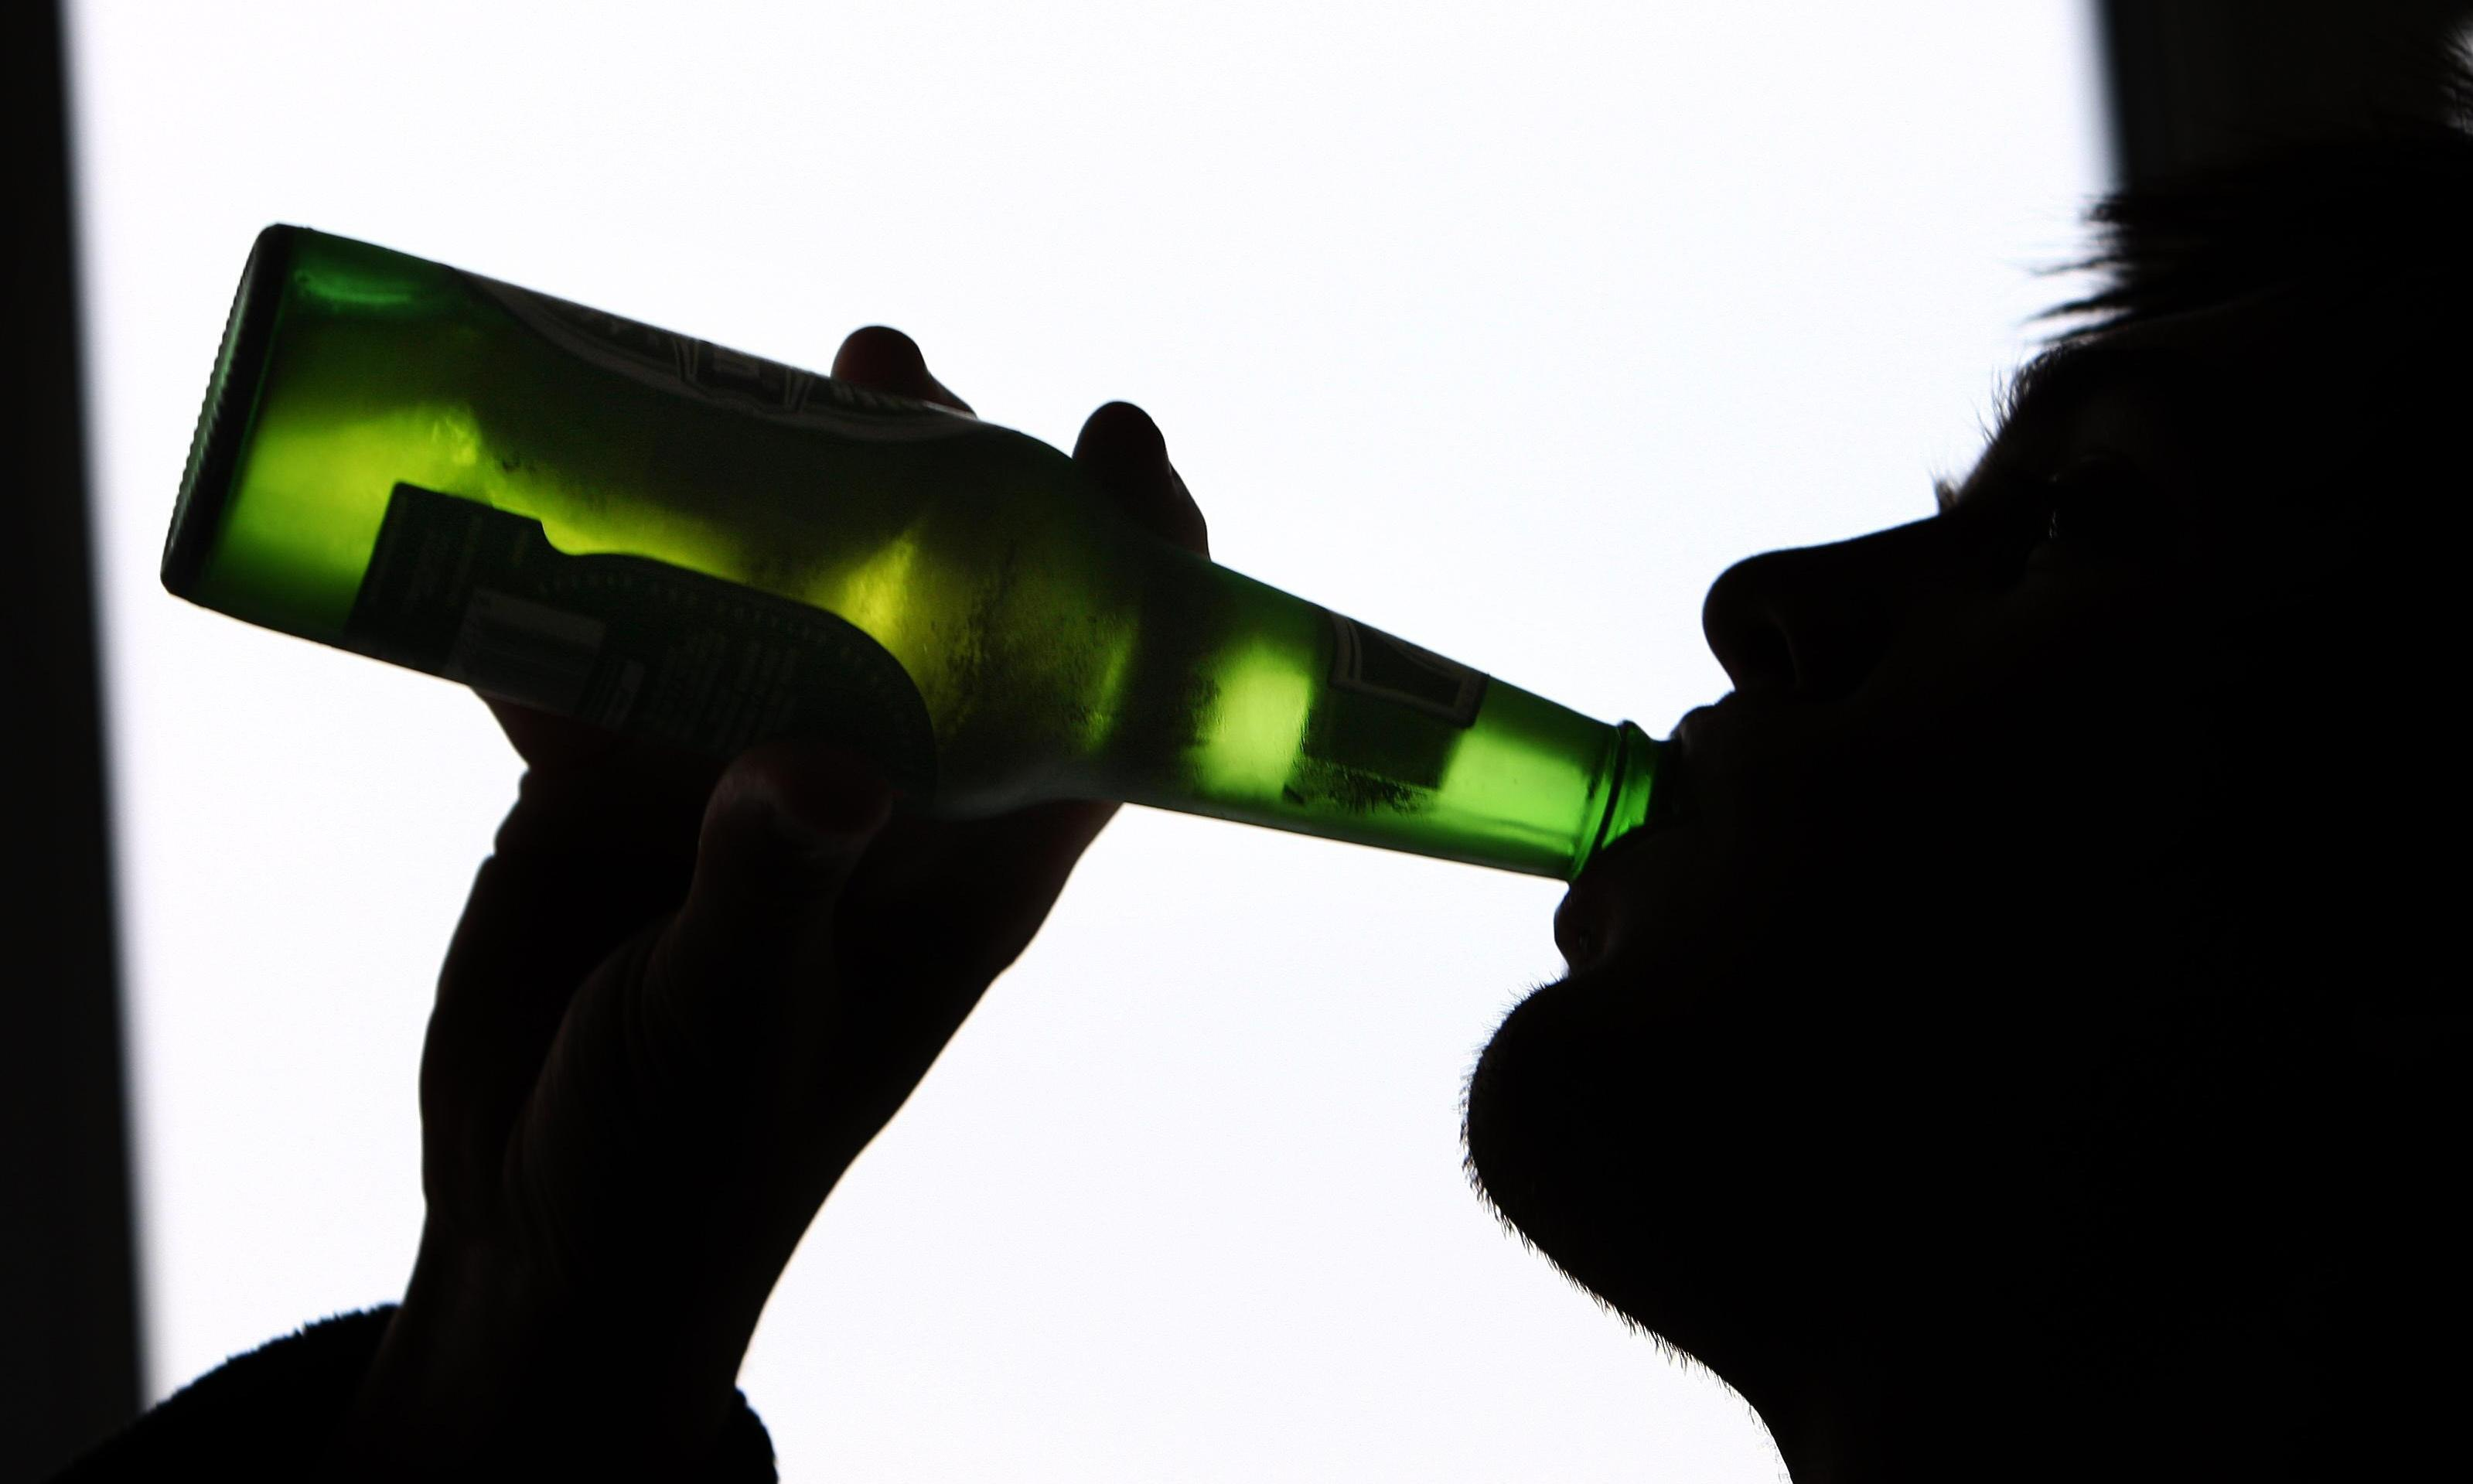 I don't want to tell alcoholic patients to keep drinking, but I have to